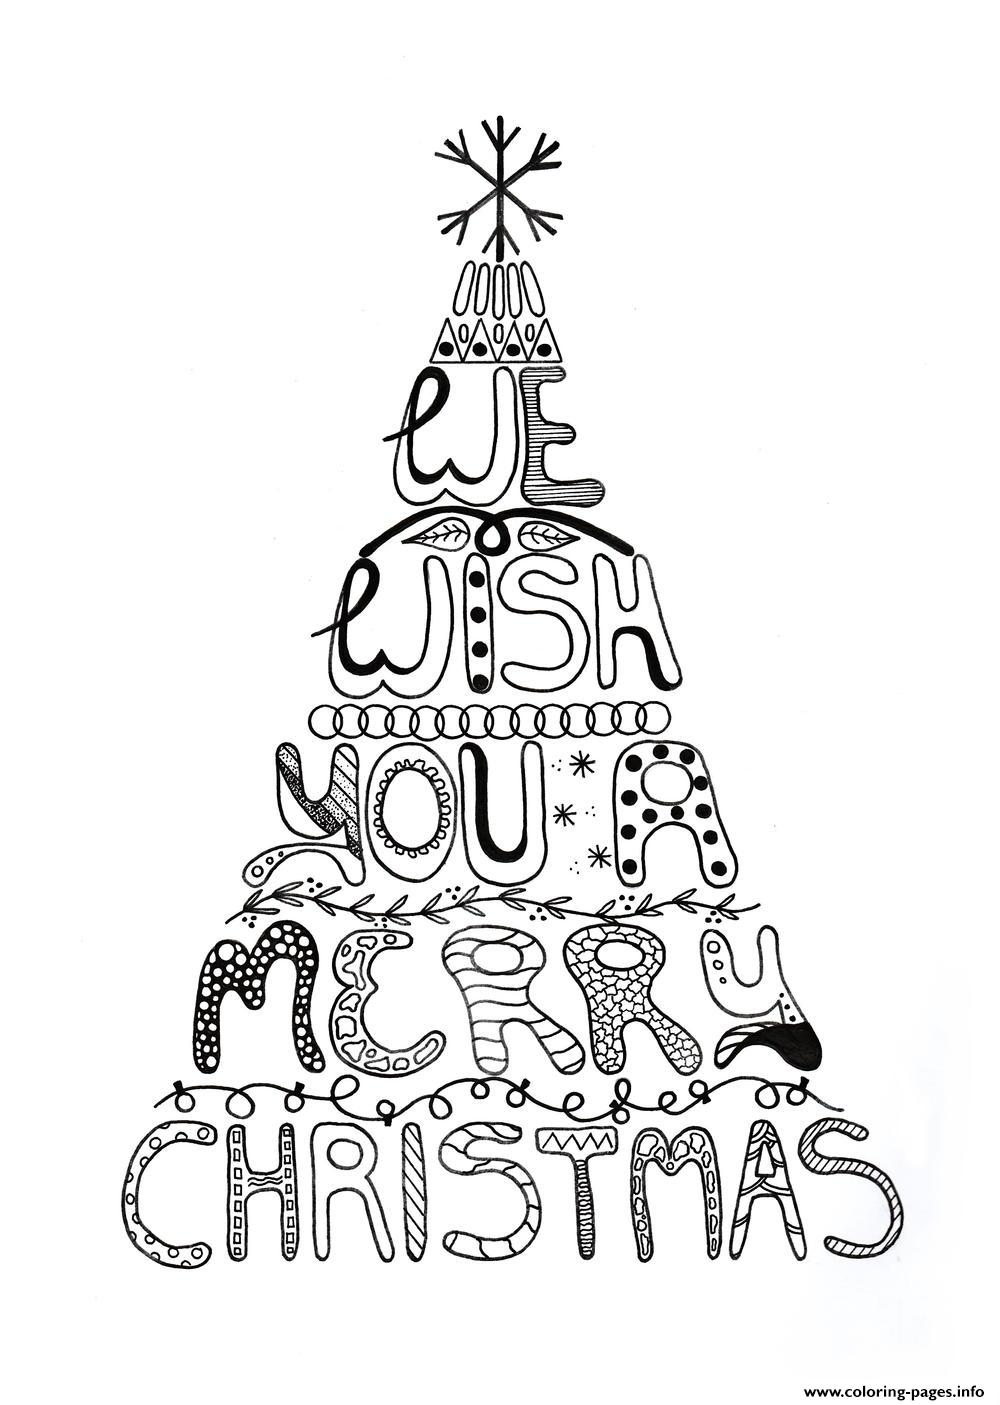 Merry Christmas Adult Tree Coloring